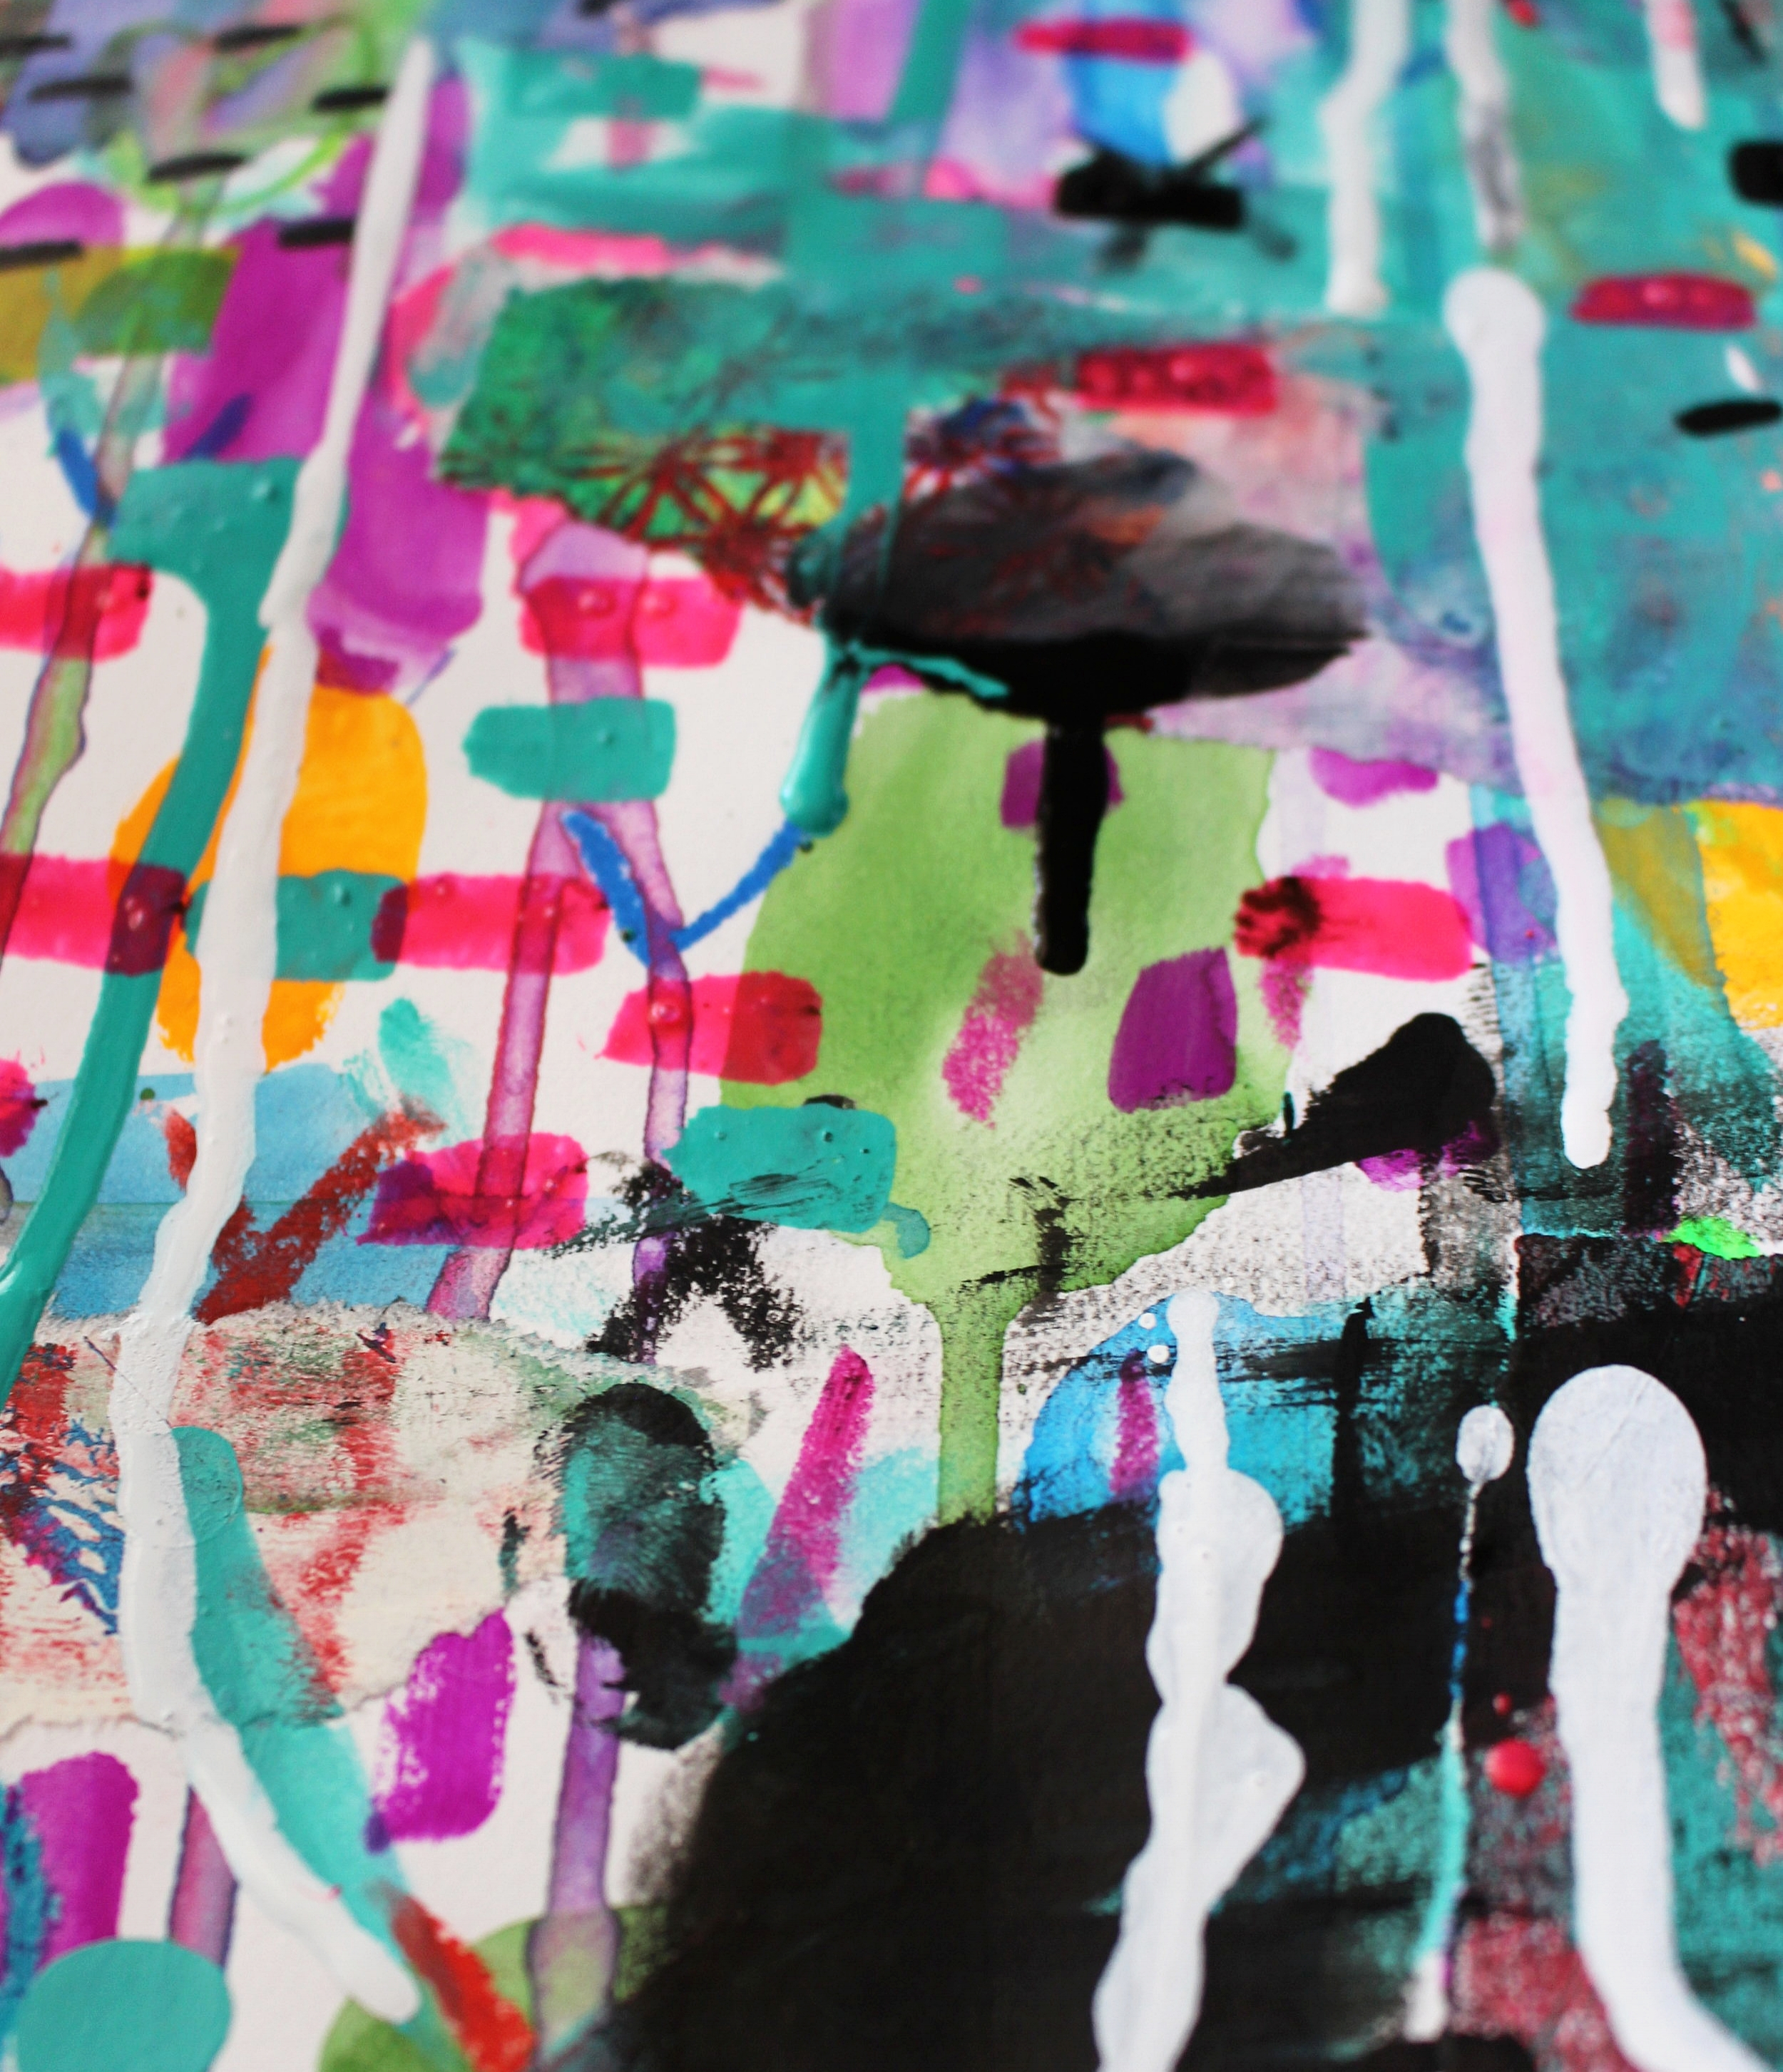 drippy, messy, colorful fun!